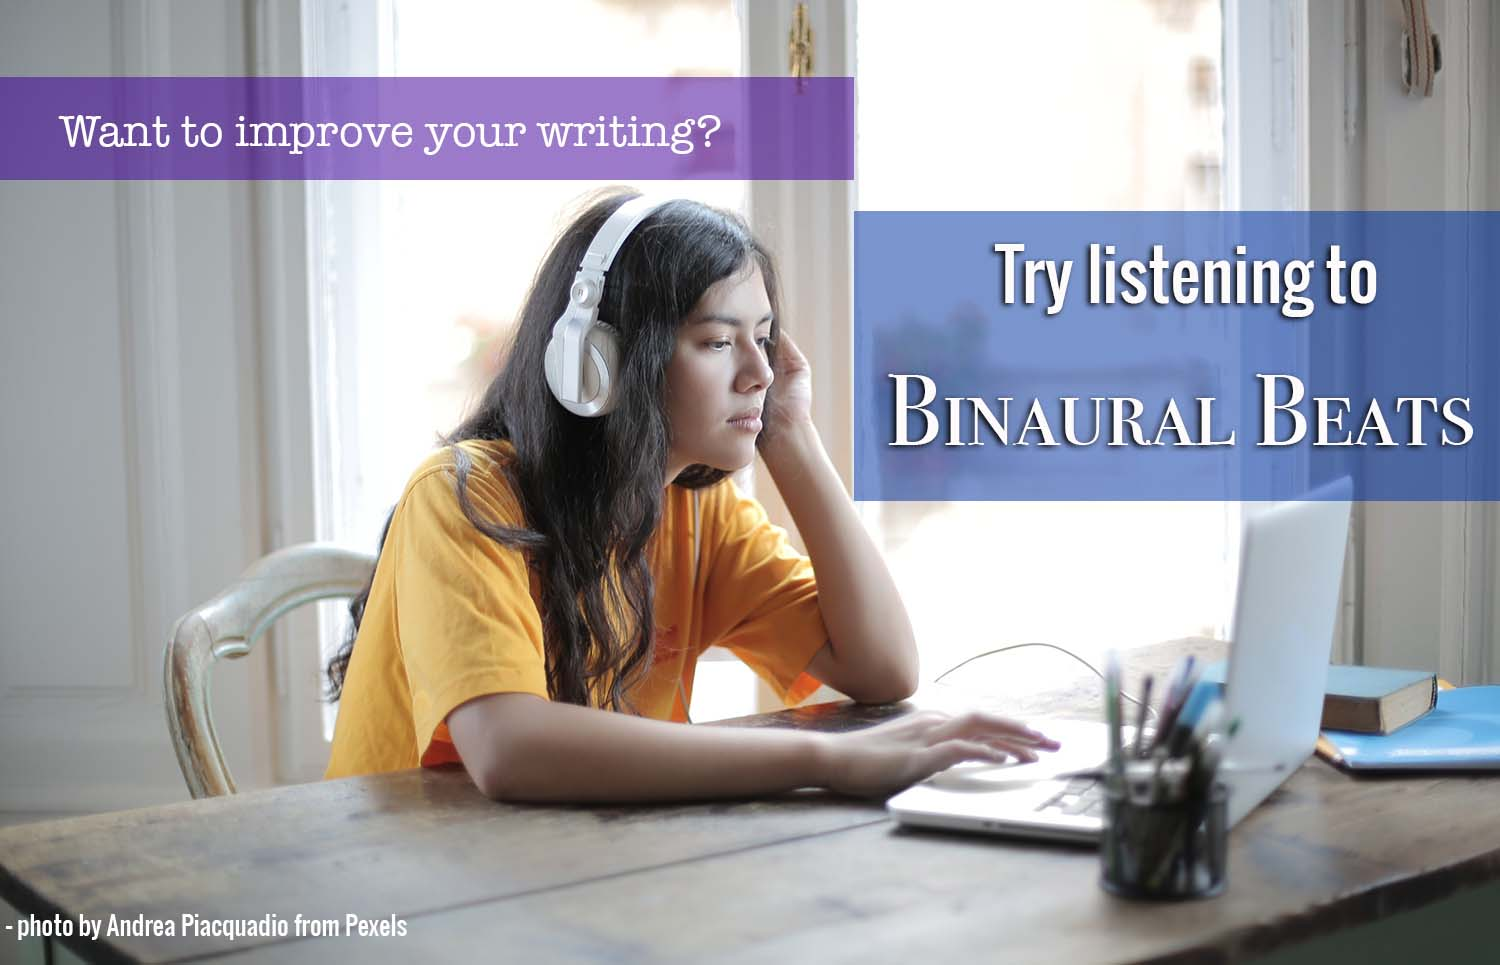 Want to Improve your Writing? Try Listening to Binaural Beats